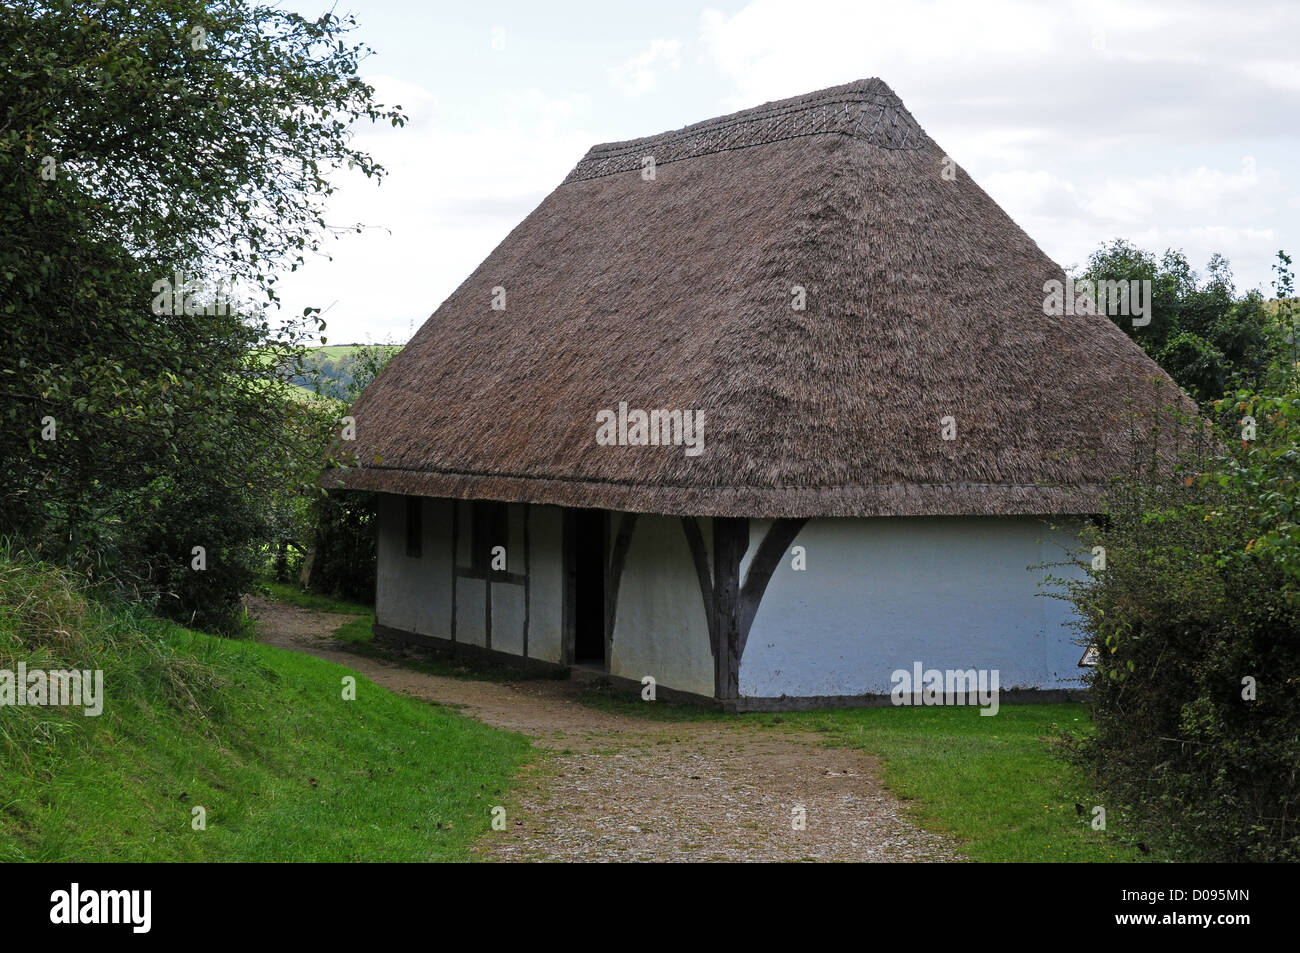 Early fifteenth century Hall from Boarhunt reconstructed at the Weald And Downland Open Air Museum. - Stock Image